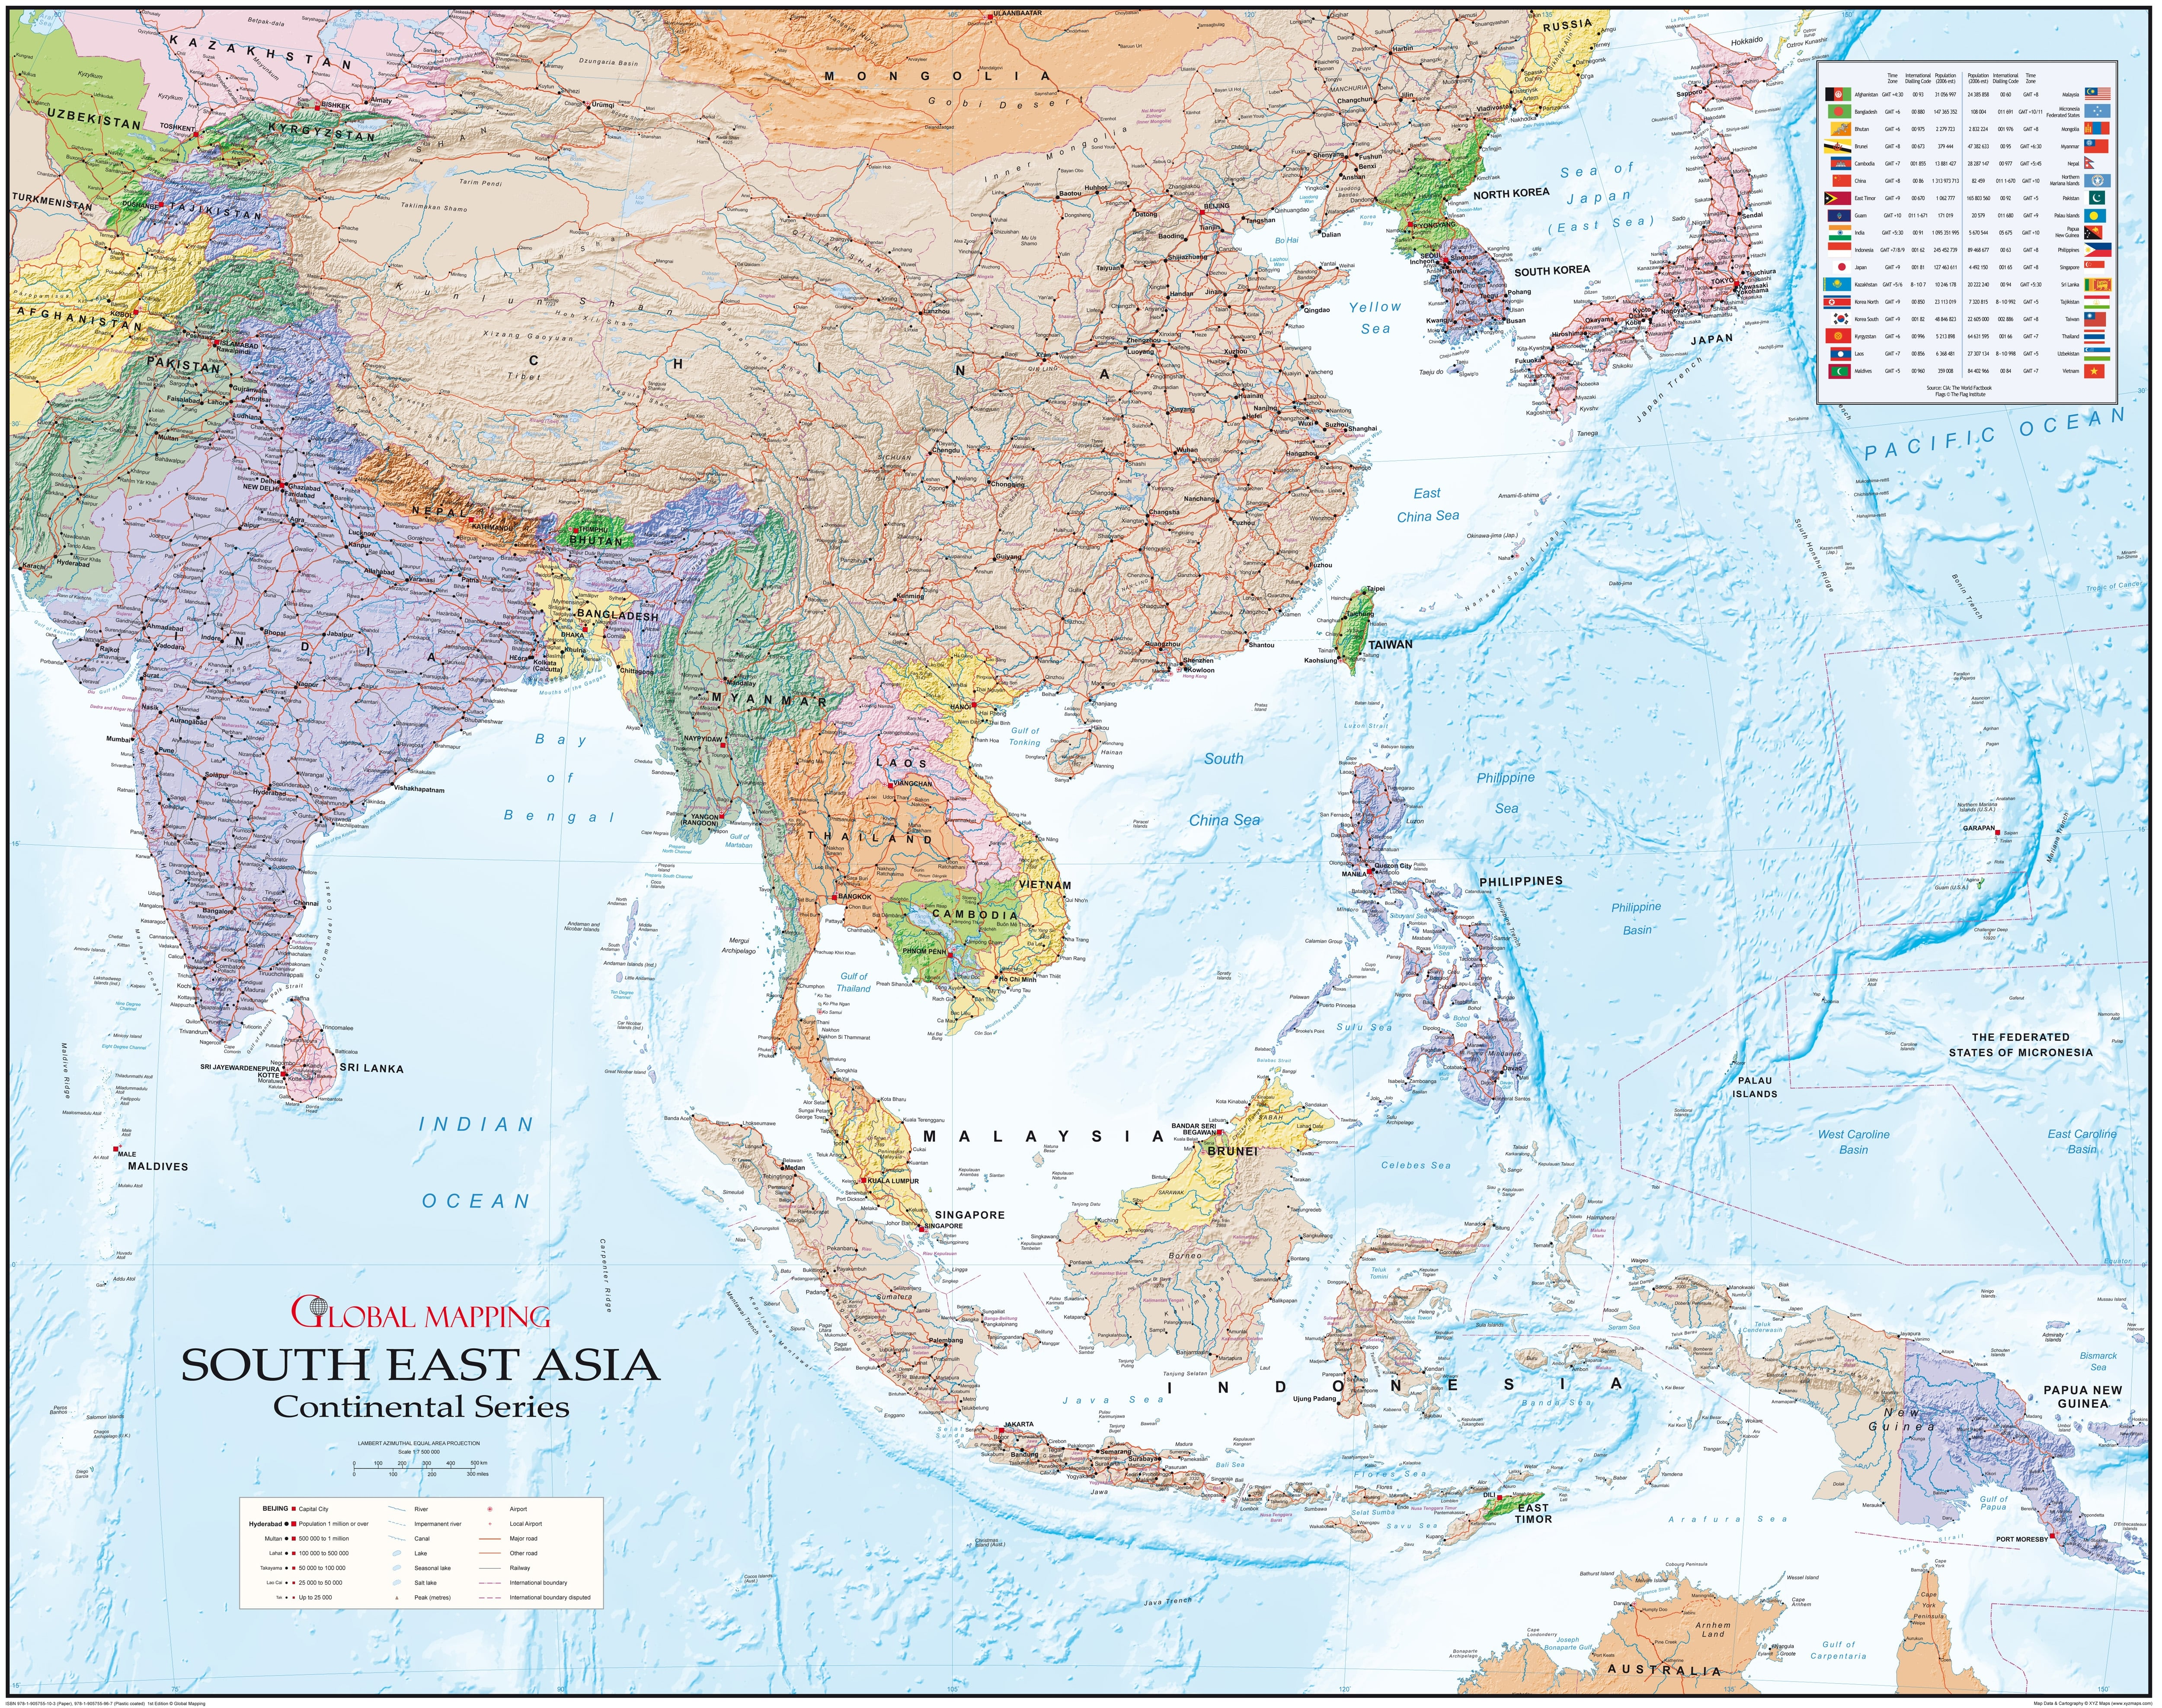 Southeast Asia Wall Map (GM) 120 x 95cm - Asia - Asia - Wall Maps